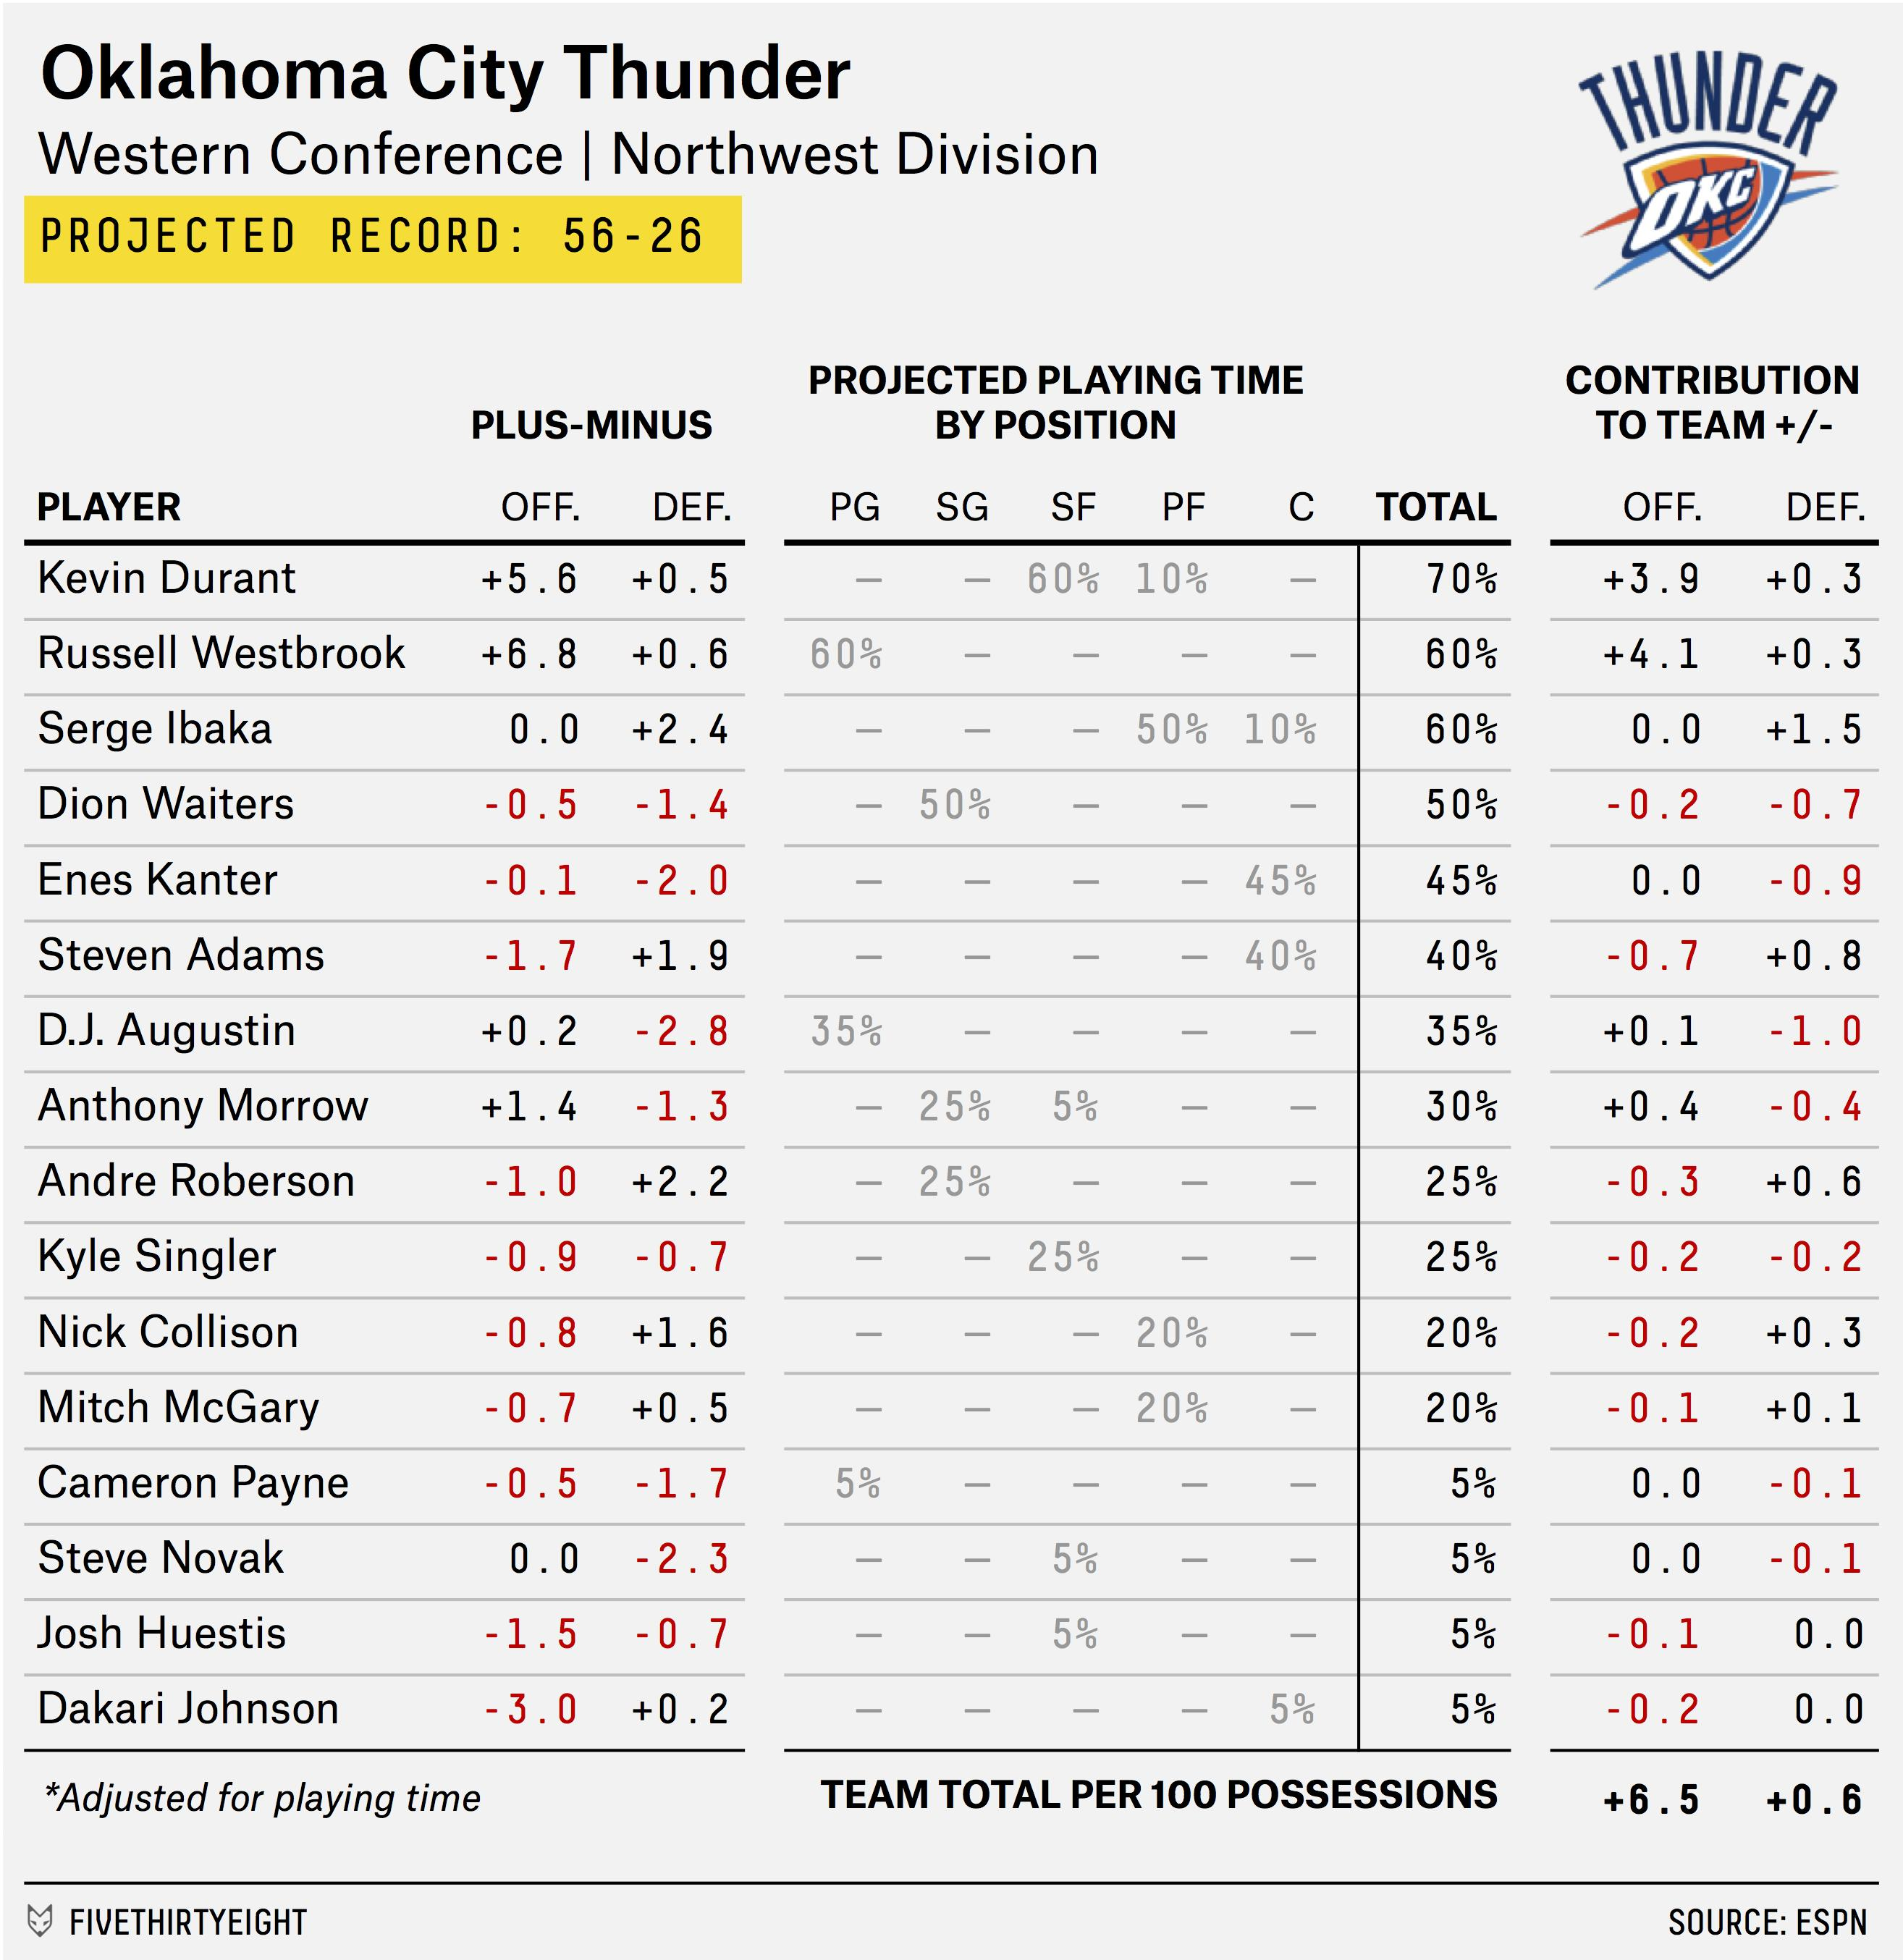 2015-16 NBA Preview: Is This The Thunder's Last Chance?